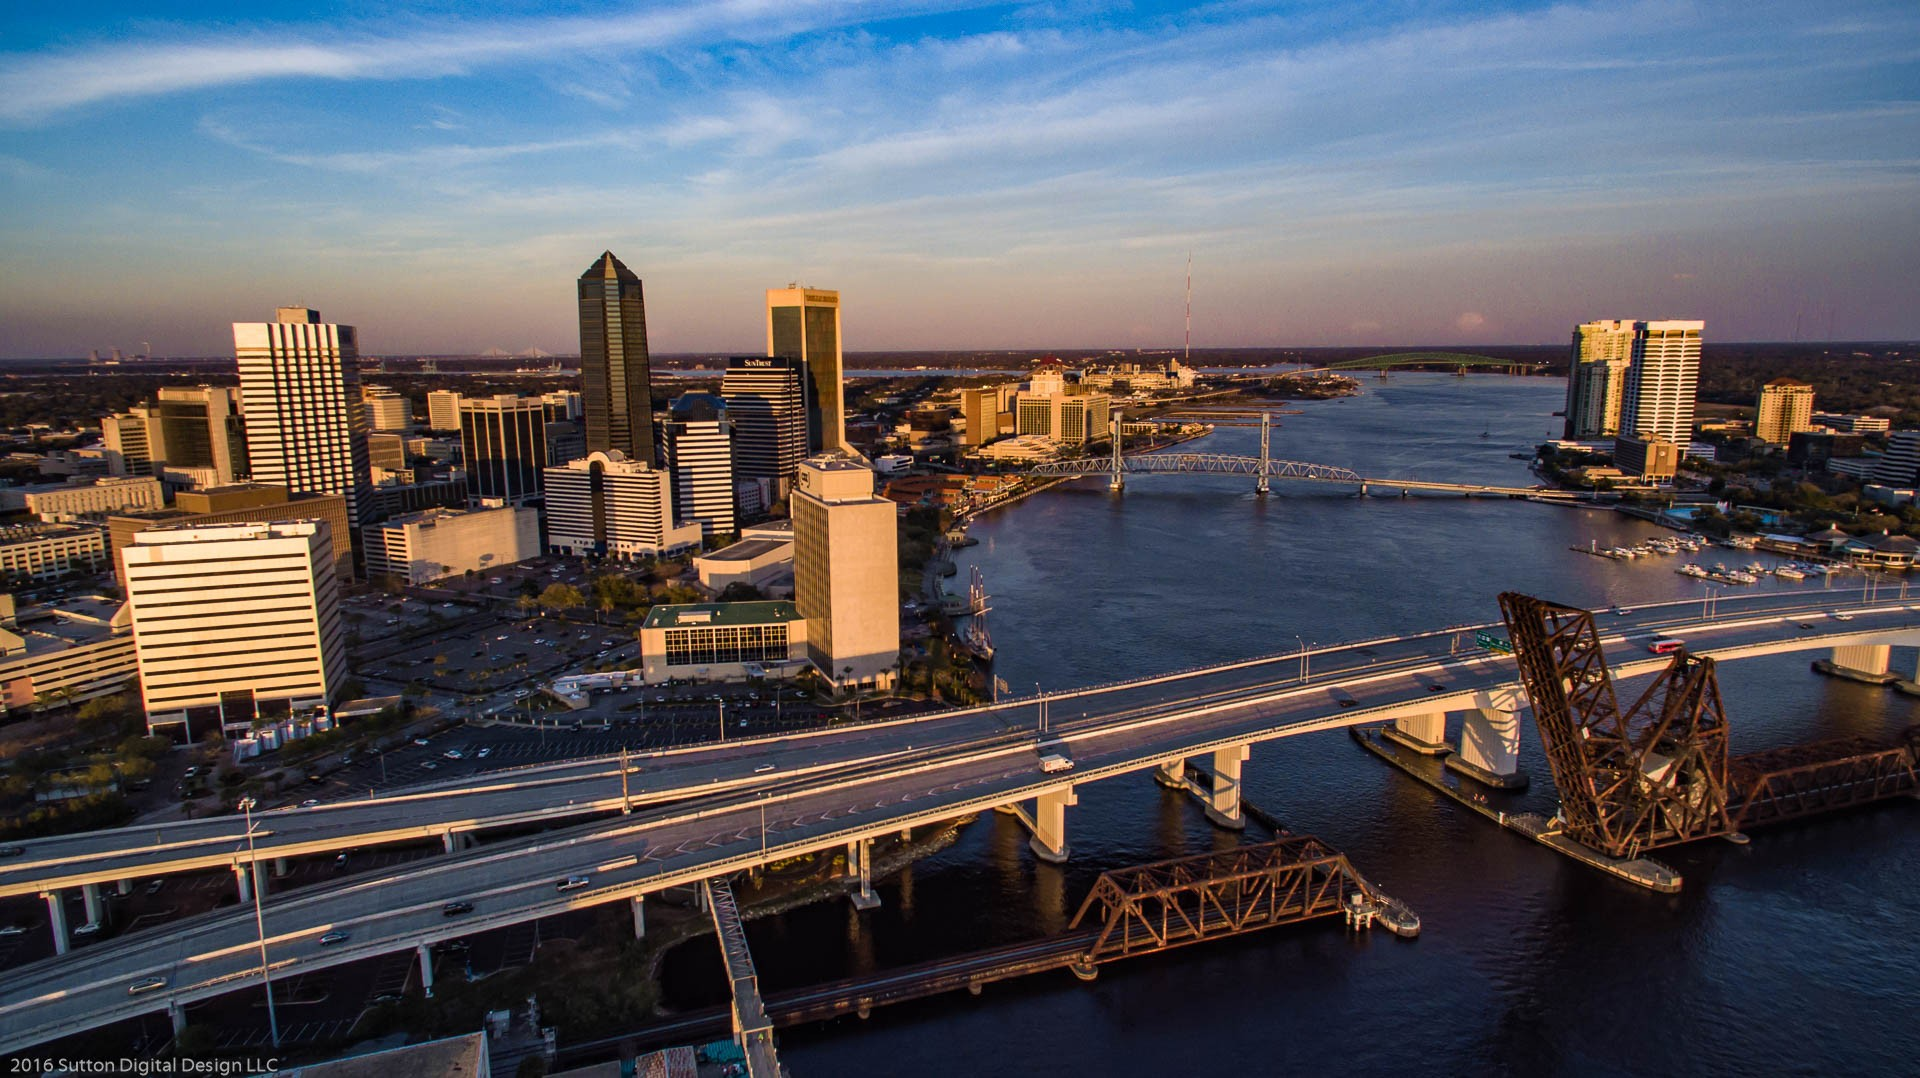 Downtown Jacksonville during the golden hour